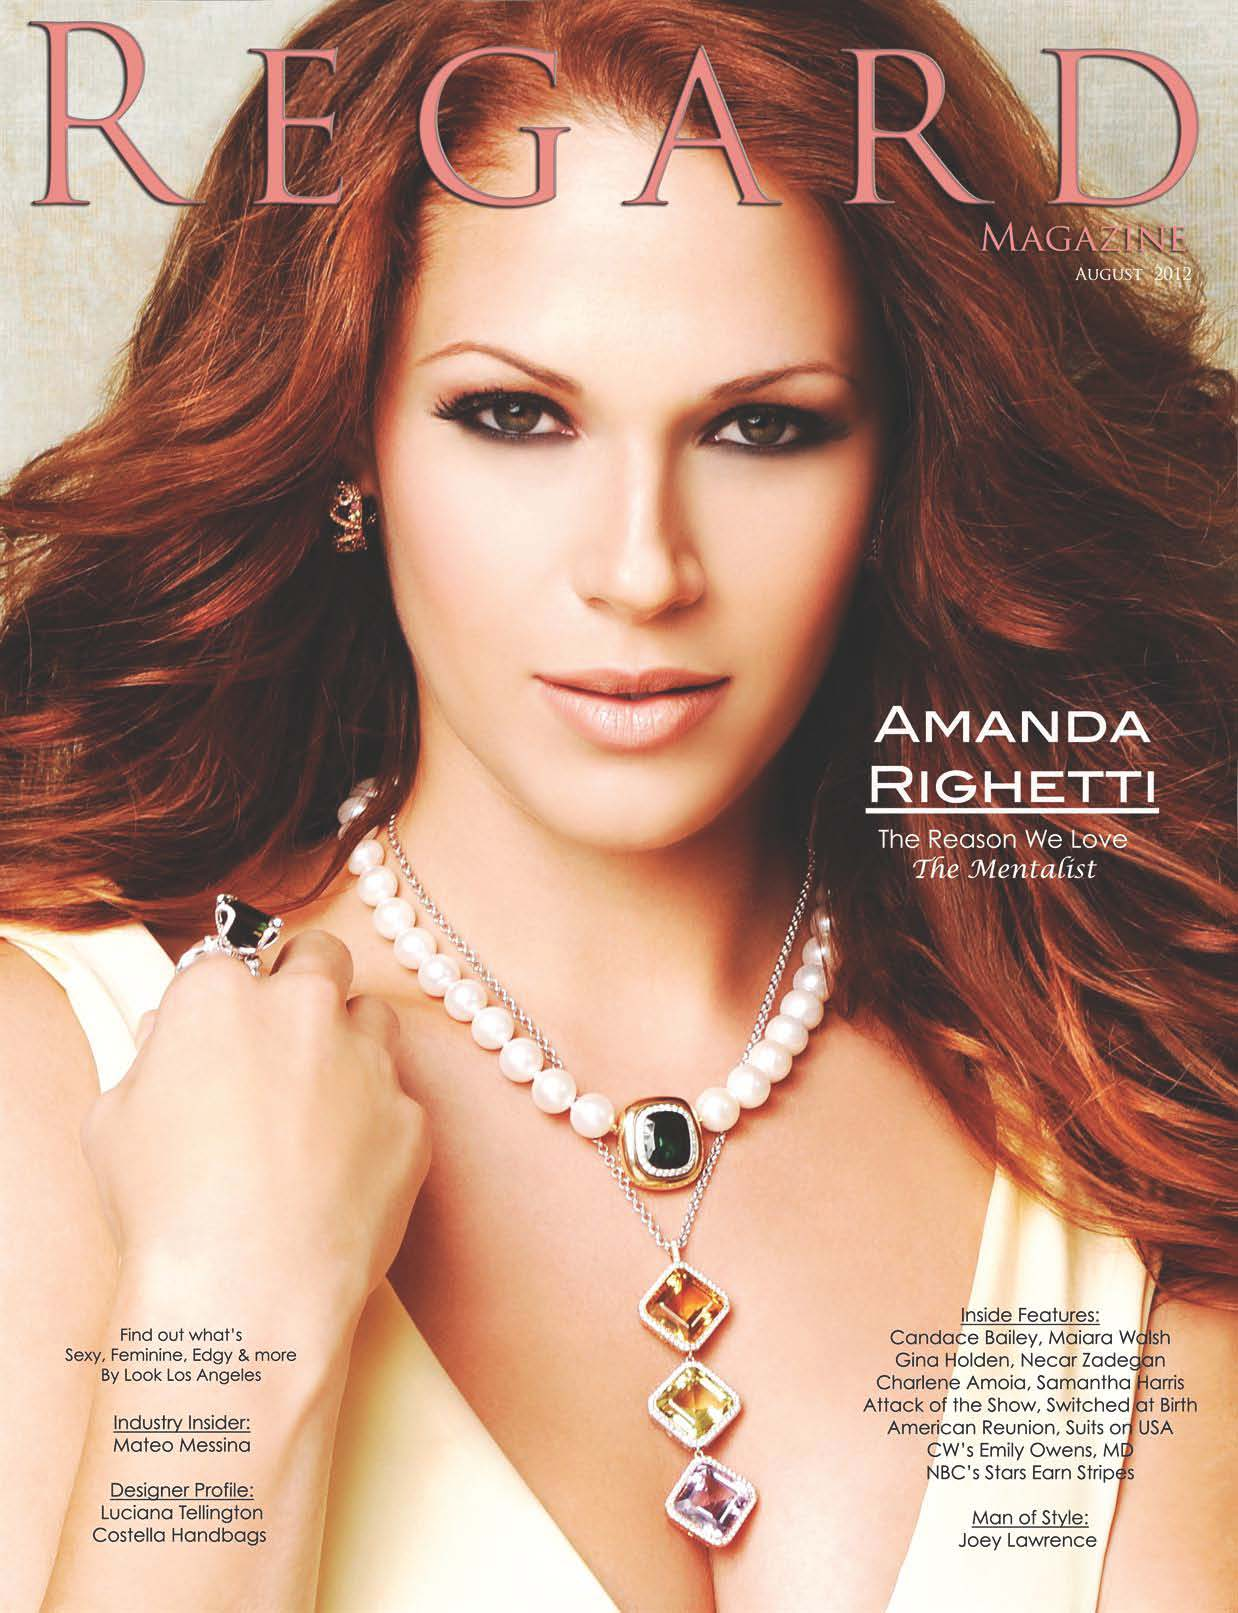 25524_septimiu29_AmandaRighetti_Regard_Aug_Sept20121_122_482lo.jpg